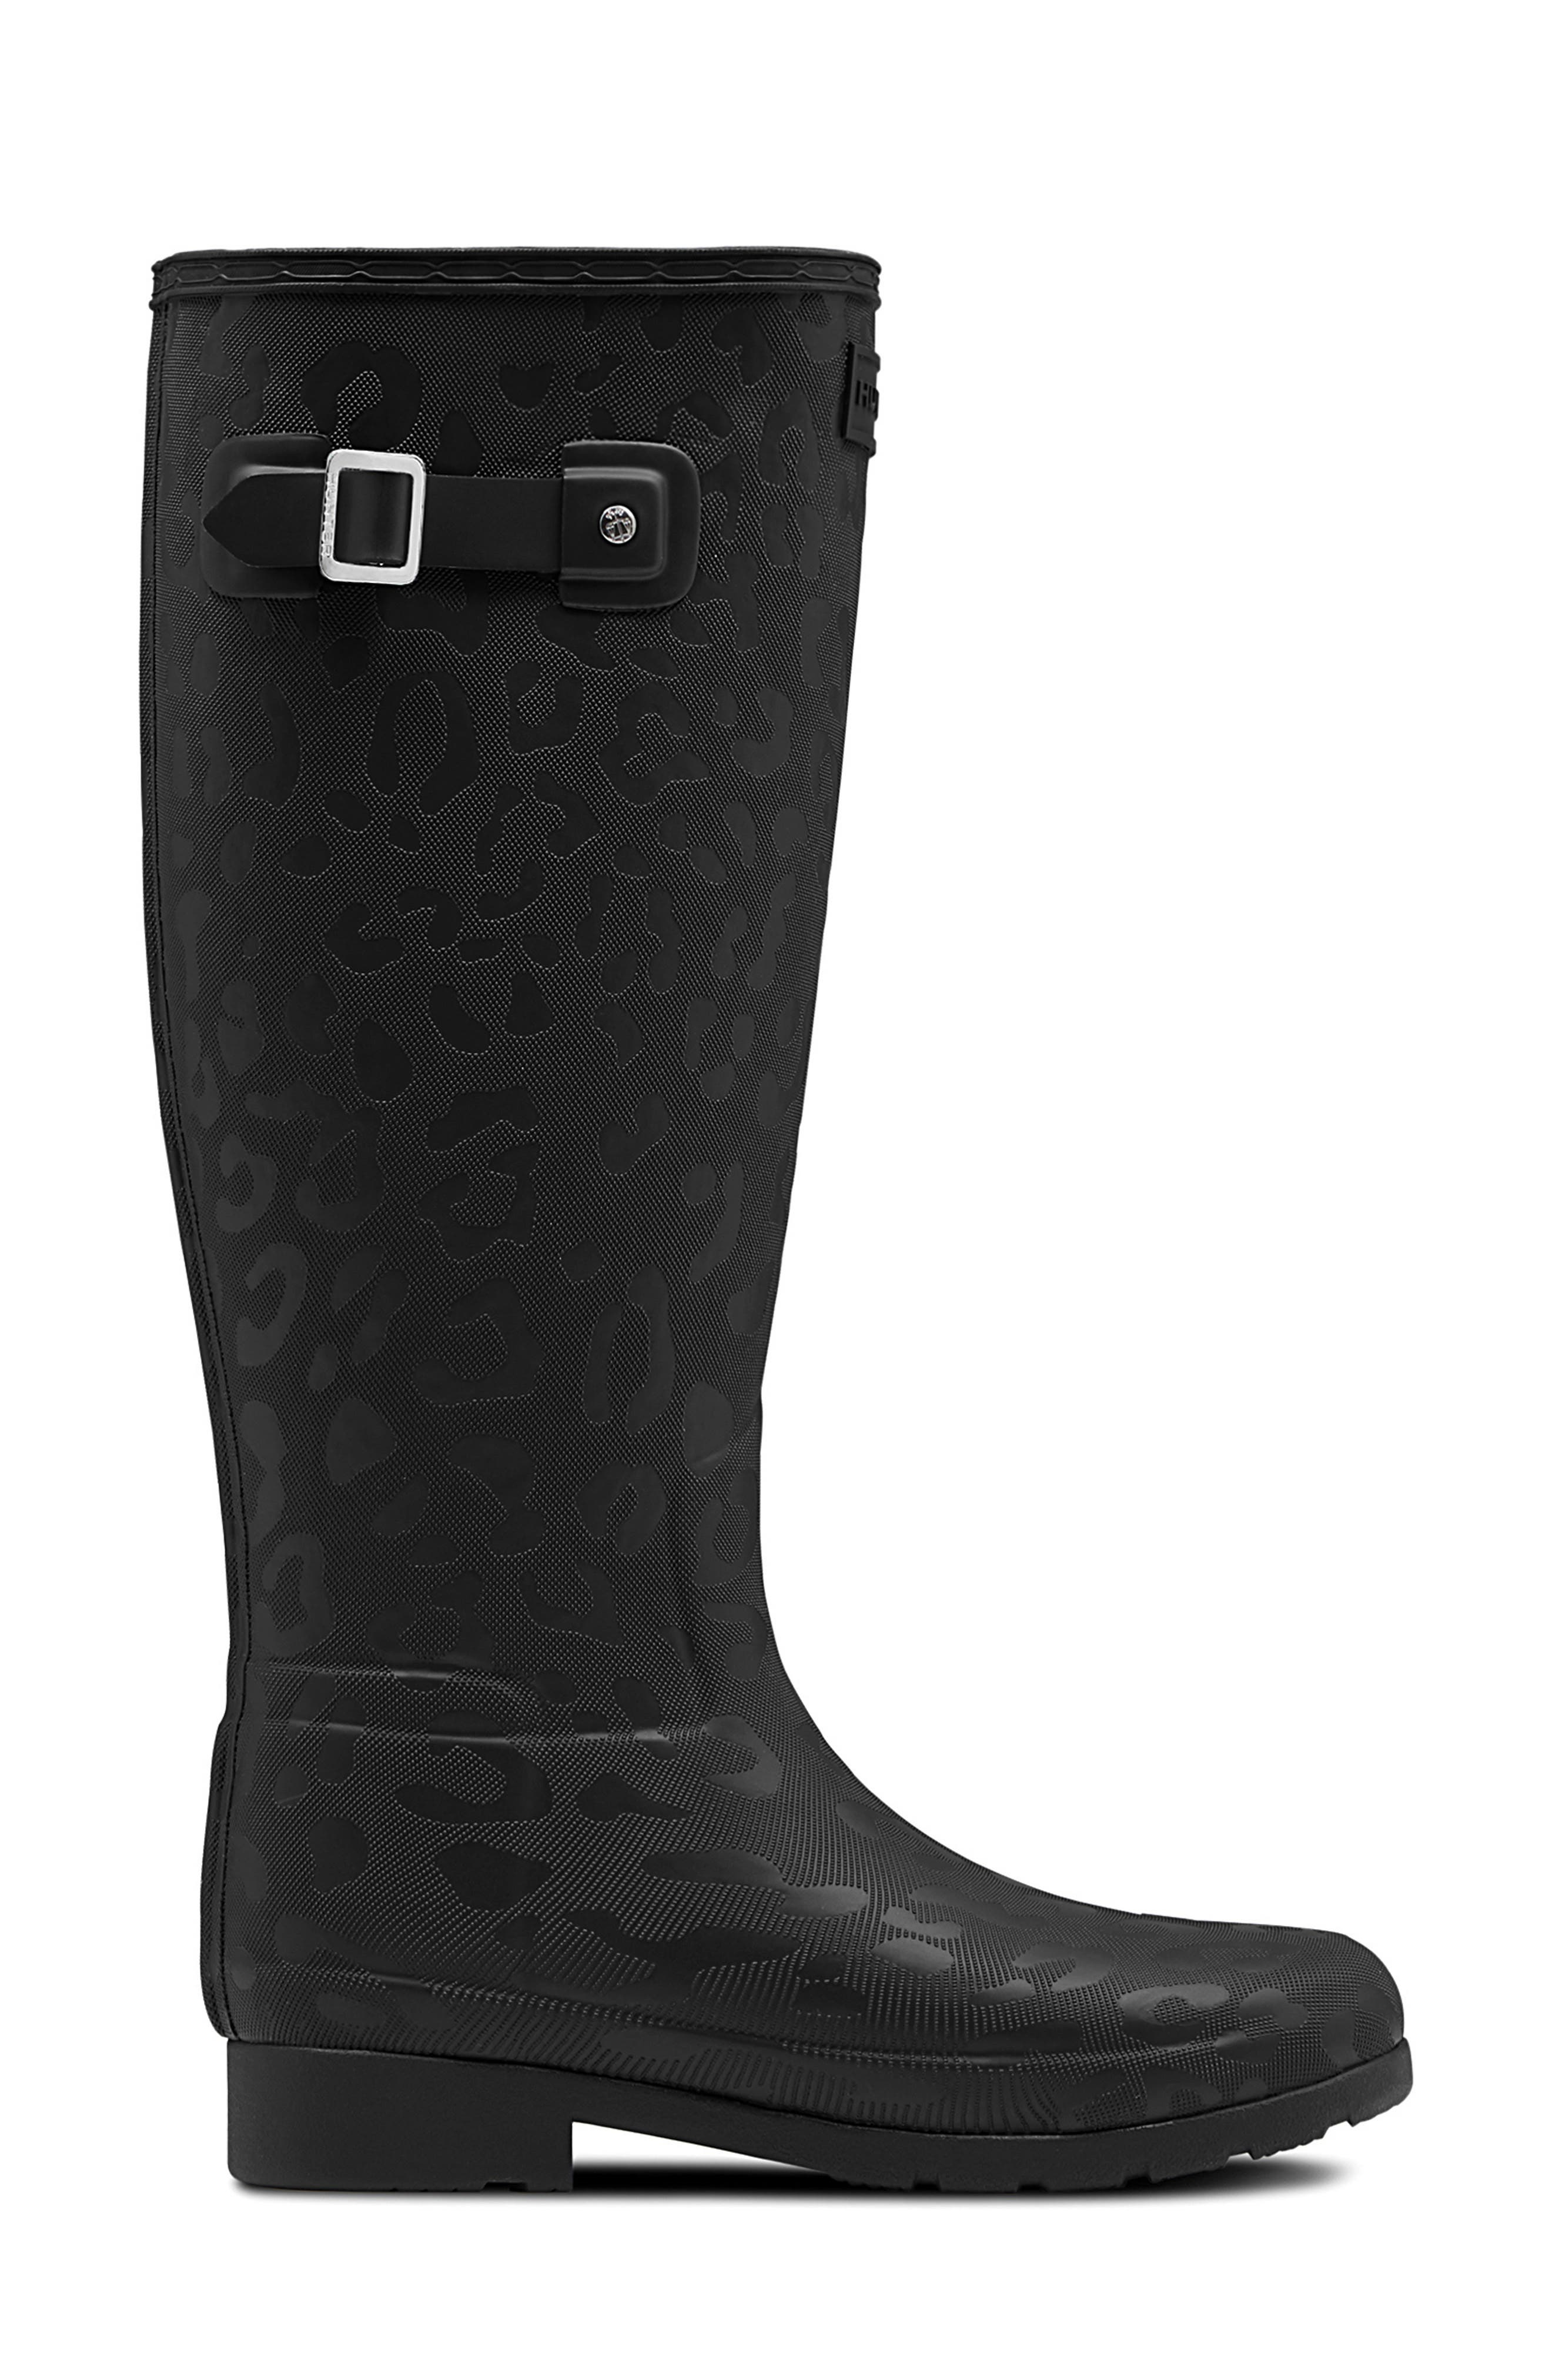 Original Insulated Refined Tall Rain Boot,                             Alternate thumbnail 3, color,                             BLACK